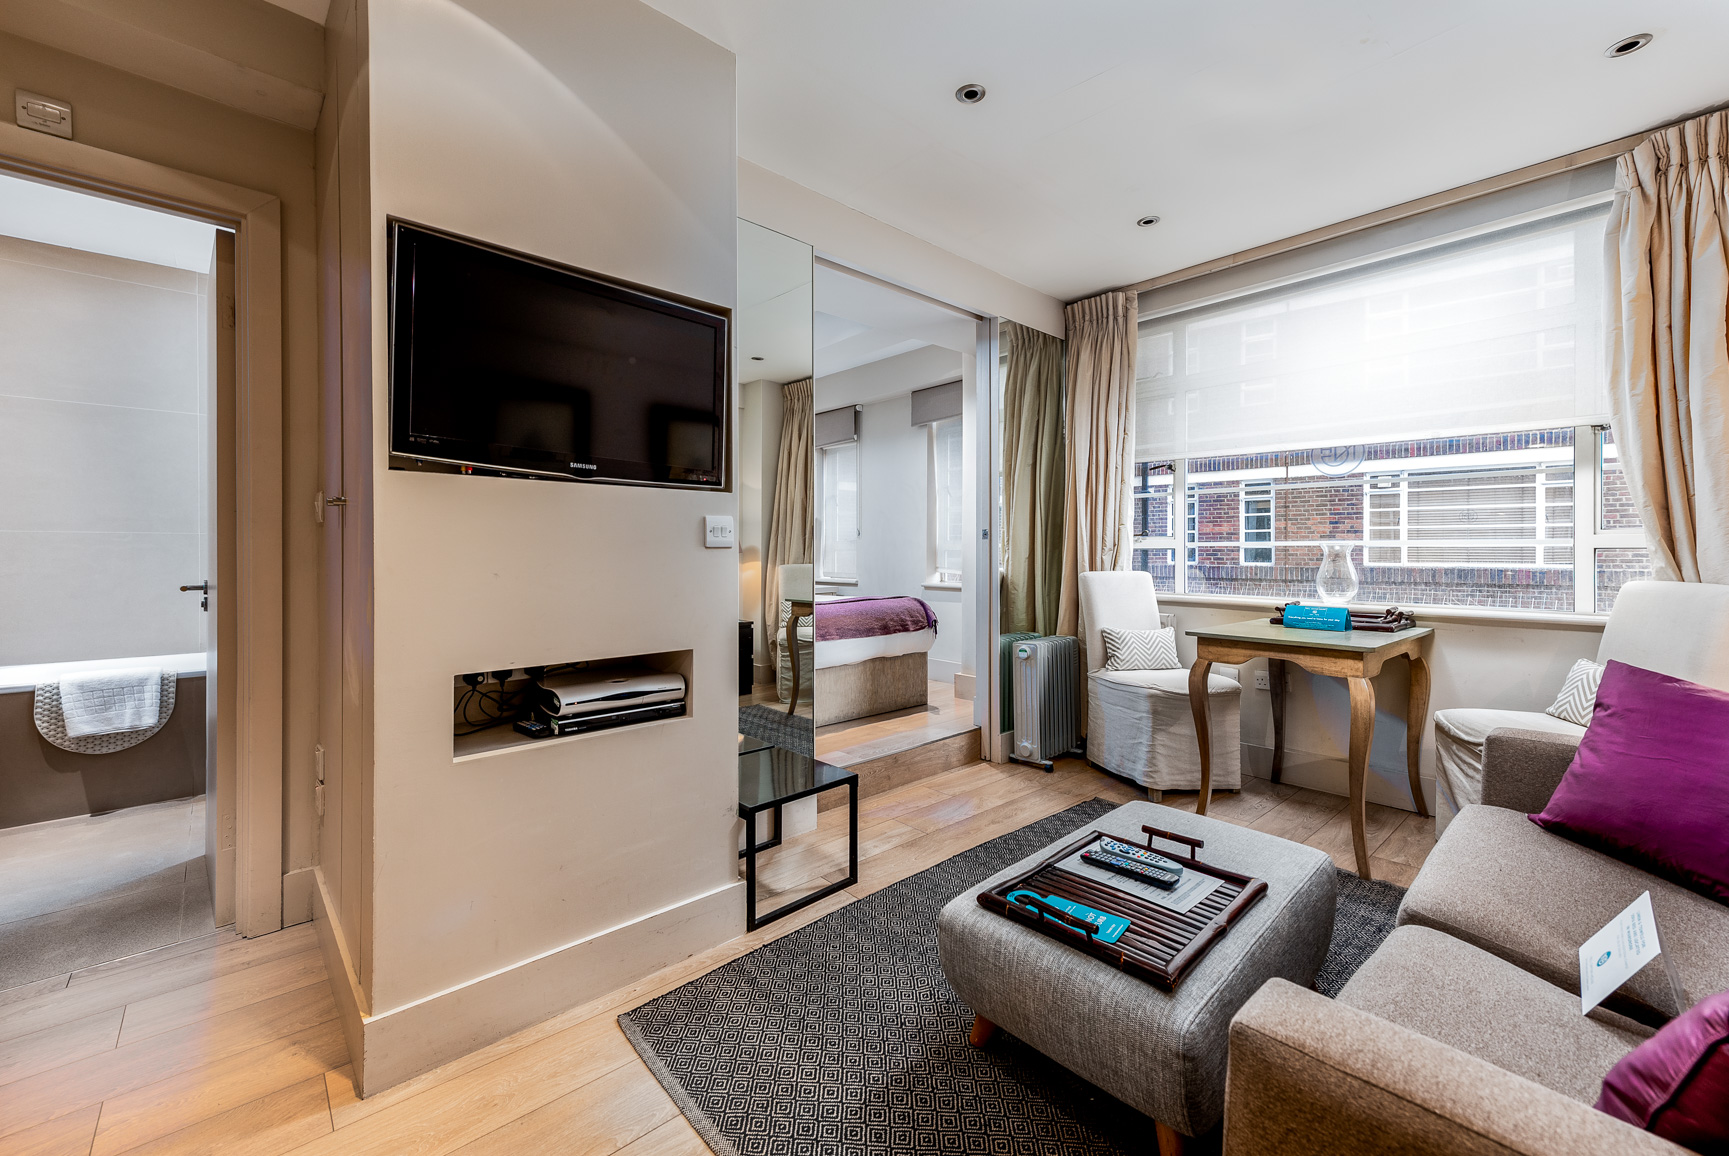 TV at Nell Gwynn House Accommodation, Chelsea, London - Citybase Apartments